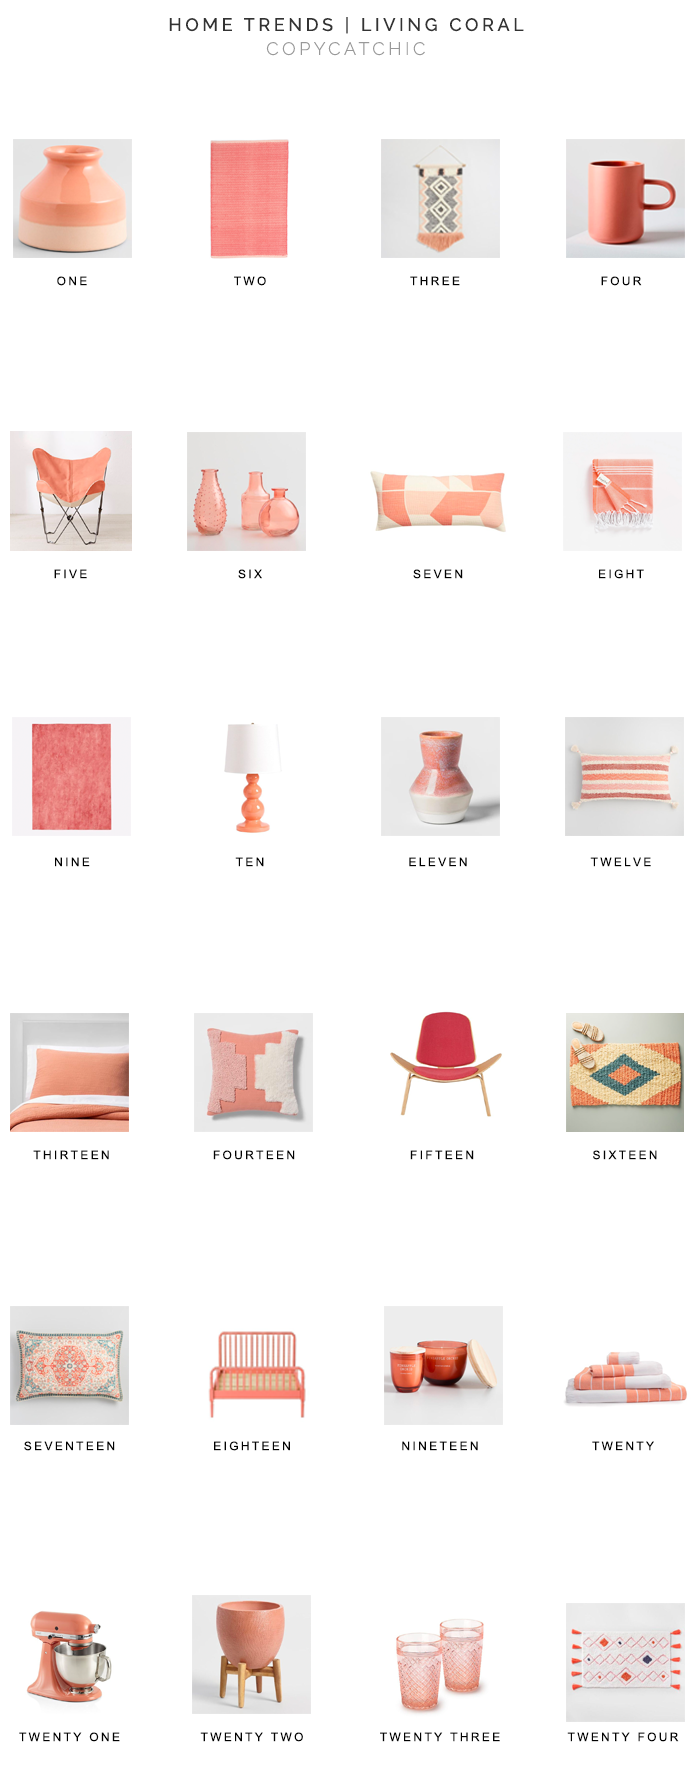 coral decor for less, pantone living coral, copycatchic luxe living for less, budget home decor and design, daily finds, home trends, sales, budget travel and room redos